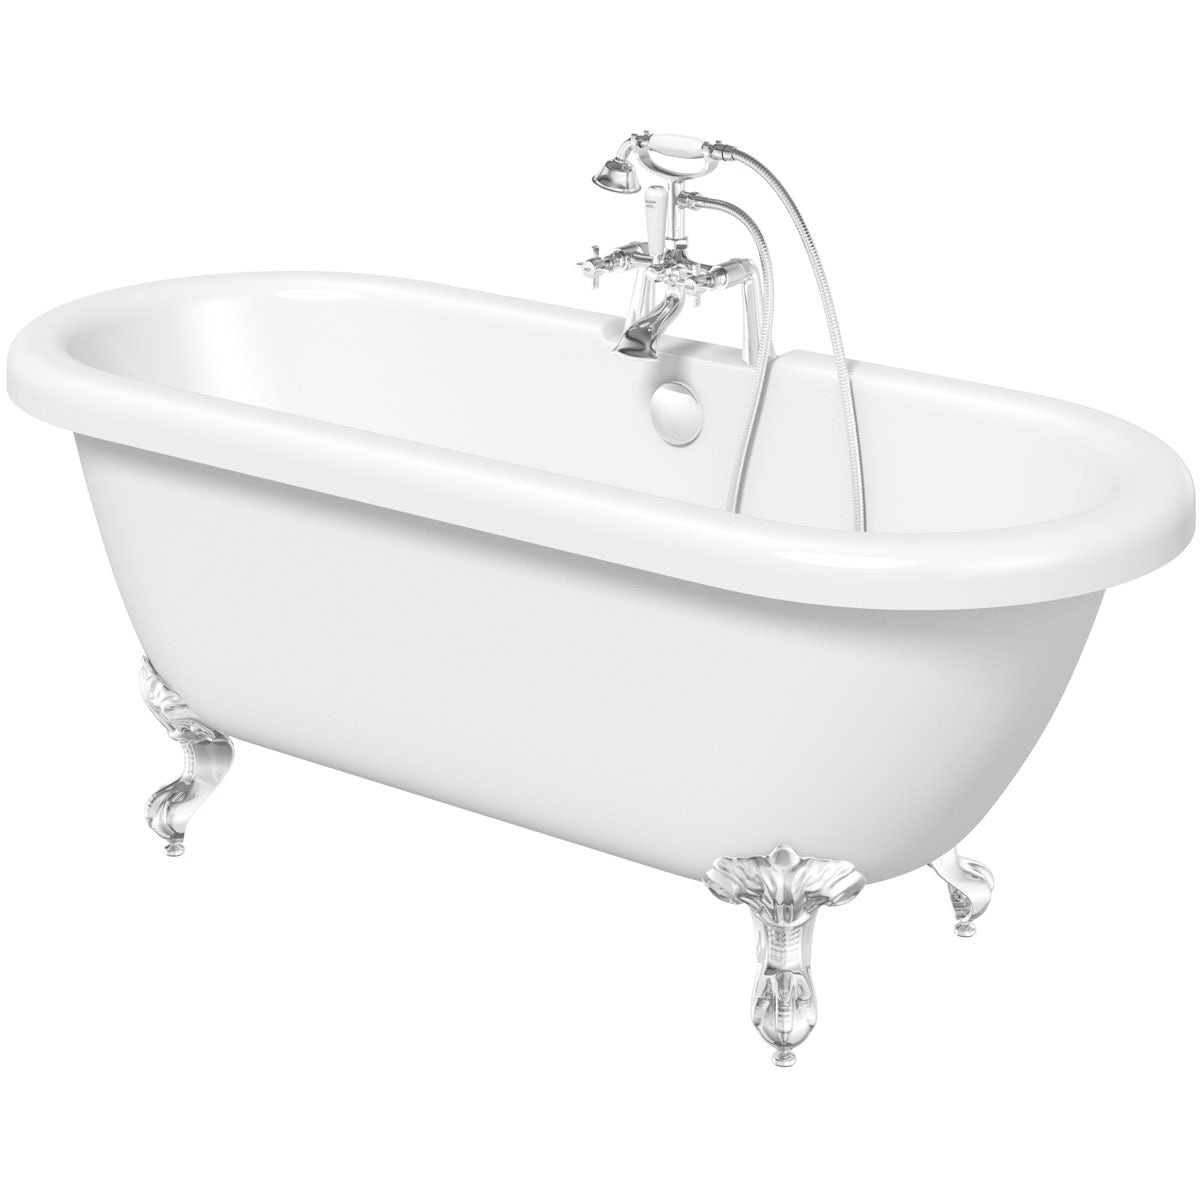 The Bath Co. Dulwich roll top bath with ball and claw feet 1500 x 720